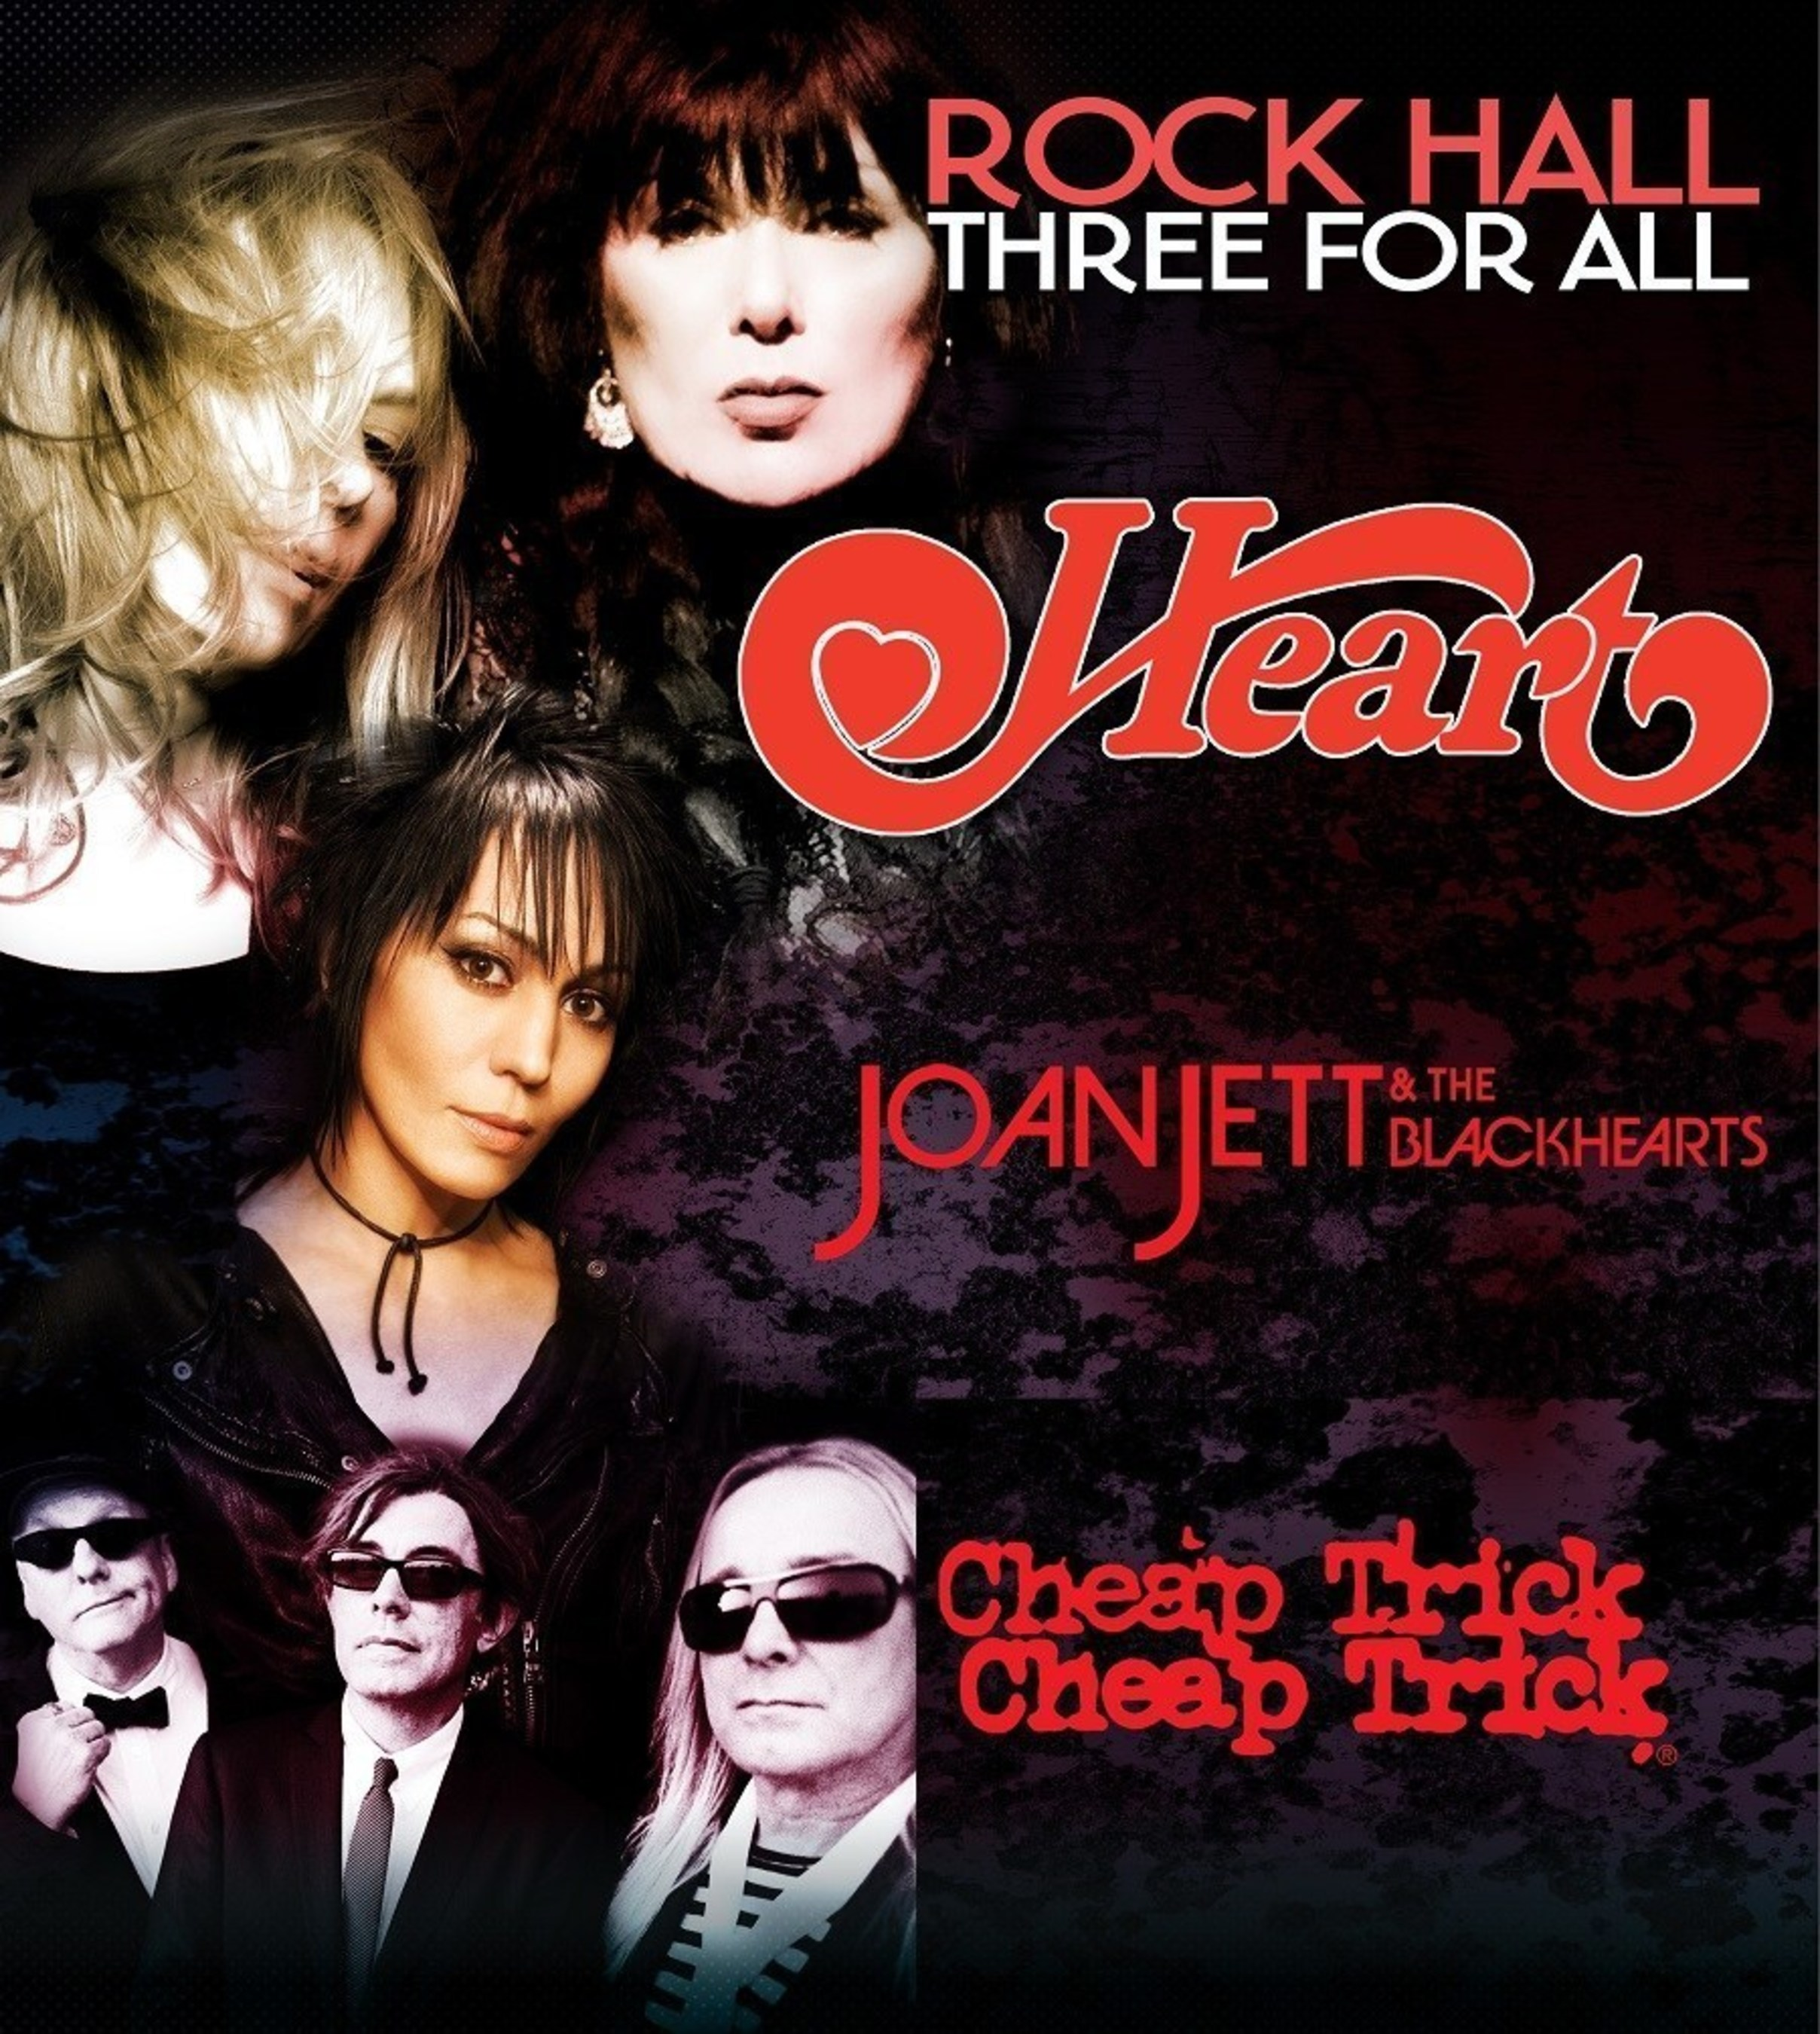 HEART, JOAN JETT & THE BLACKHEARTS AND CHEAP TRICK TO TOUR SUMMER 2016 ON ROCK HALL THREE FOR ALL TOUR